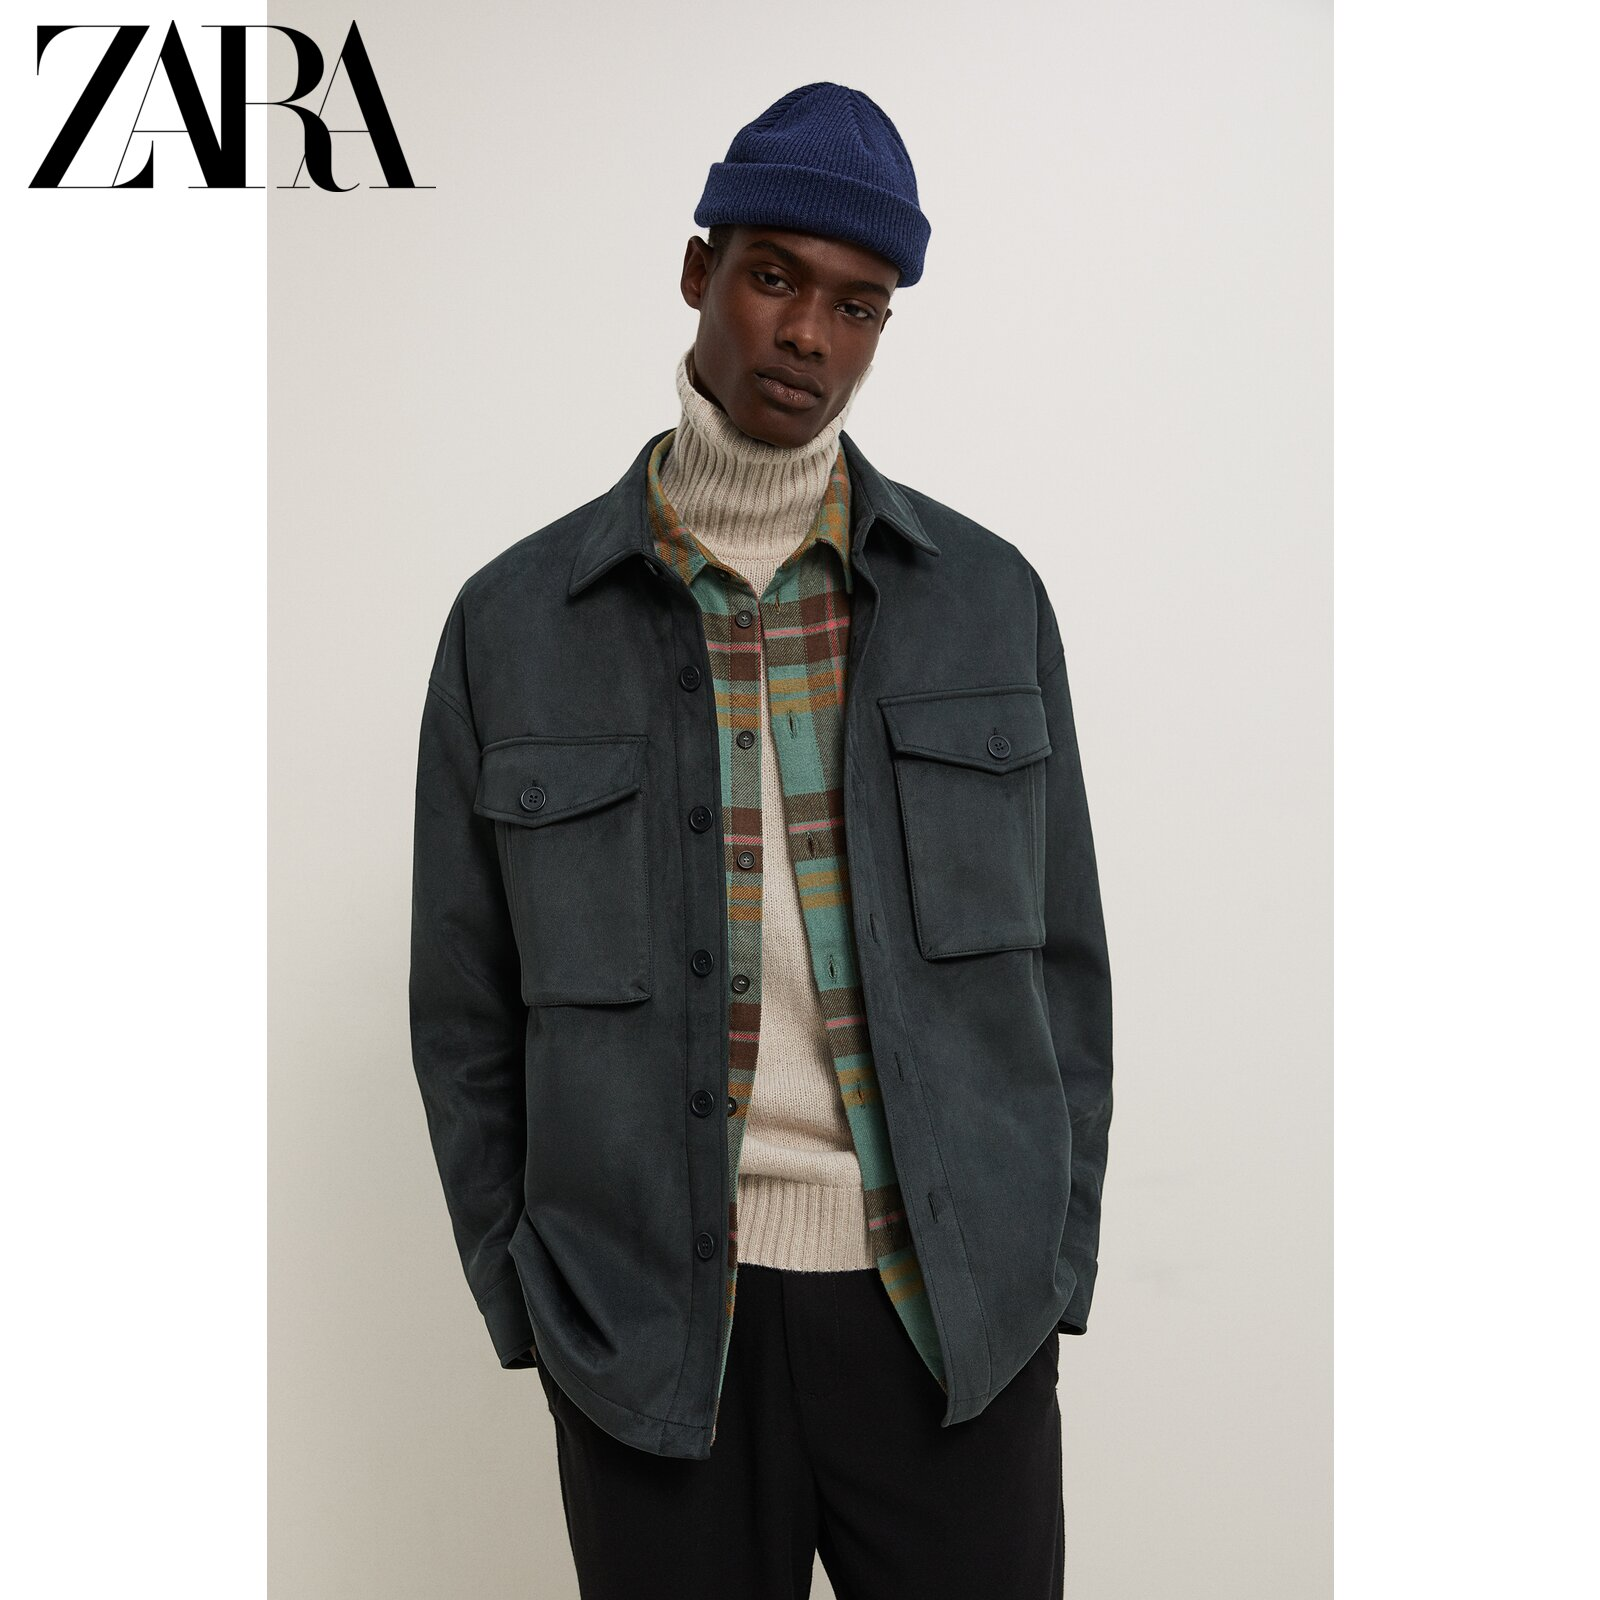 ZARA new men's autumn and winter imitation suede suede shirt jacket jacket 06318307552